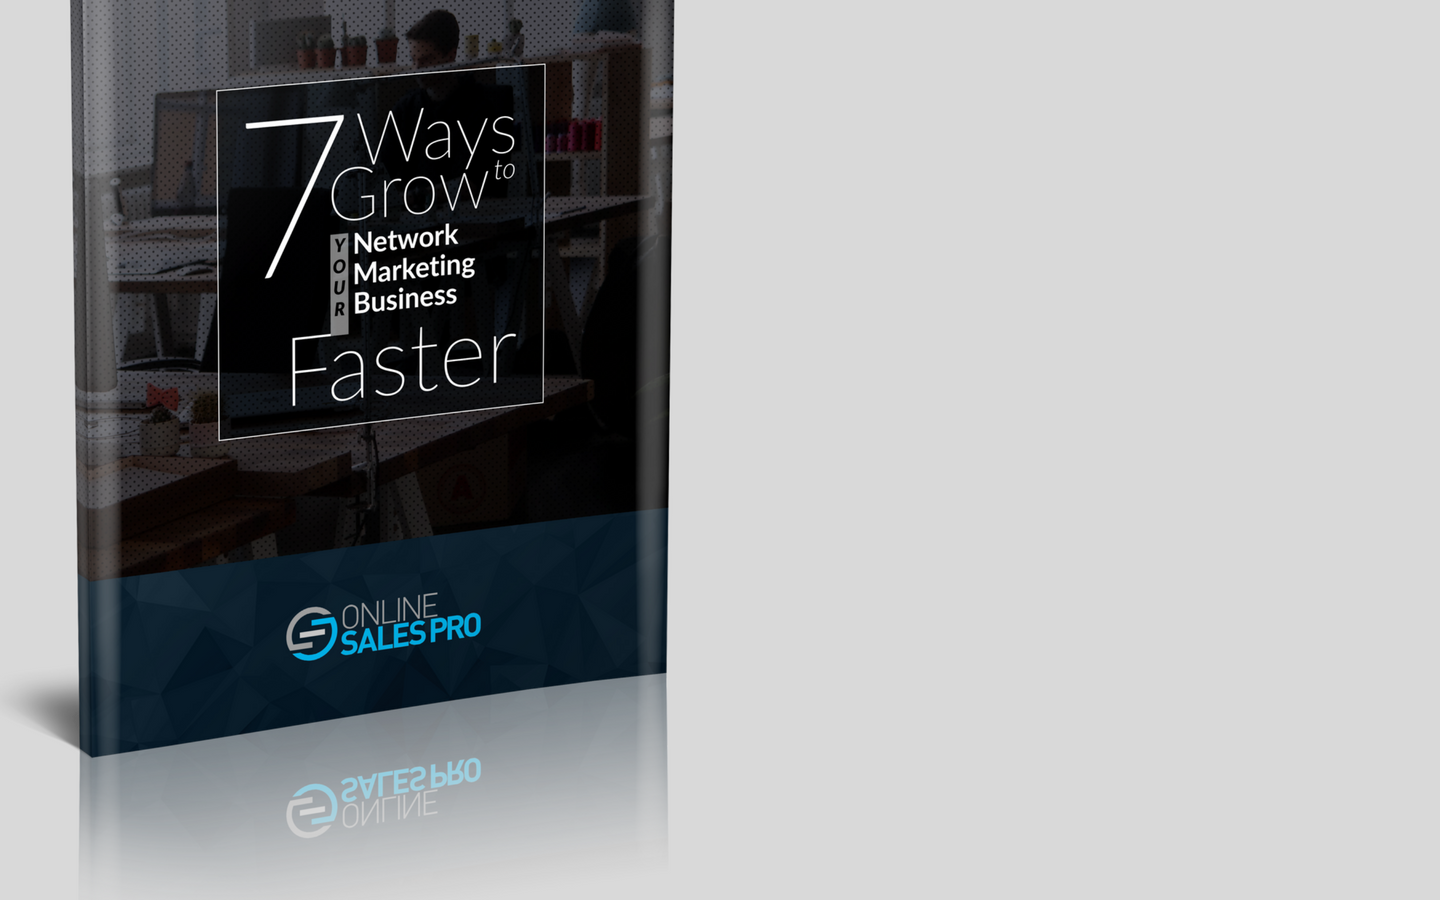 Free Report Reveals... 7 Ways to Grow Your Network Marketing Business Faster